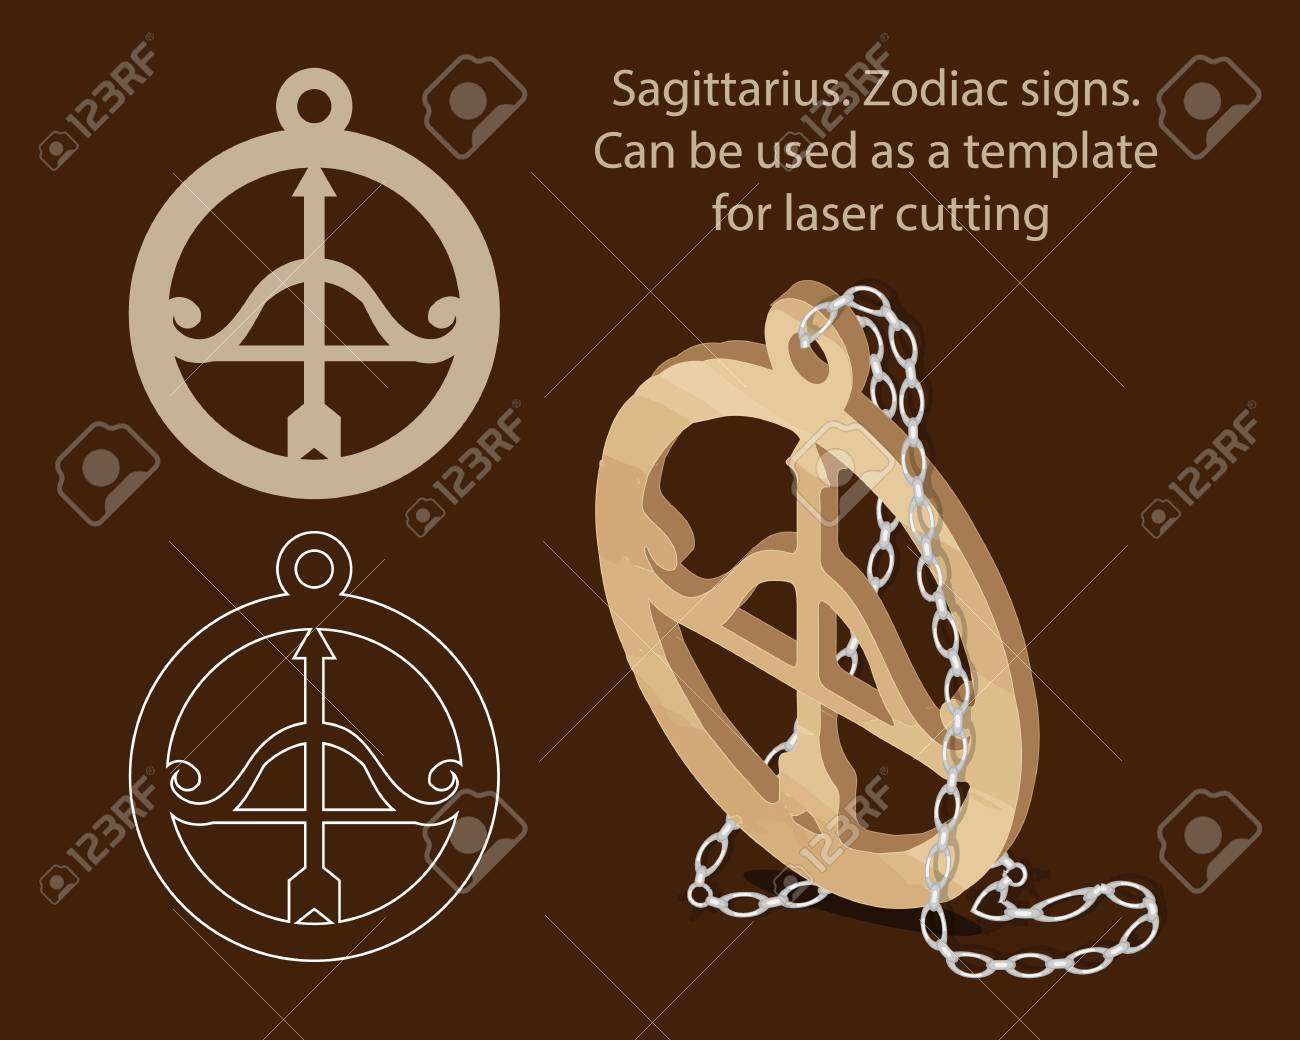 Sagittarius Zodiac Signs Can Be Used As A Template For Laser